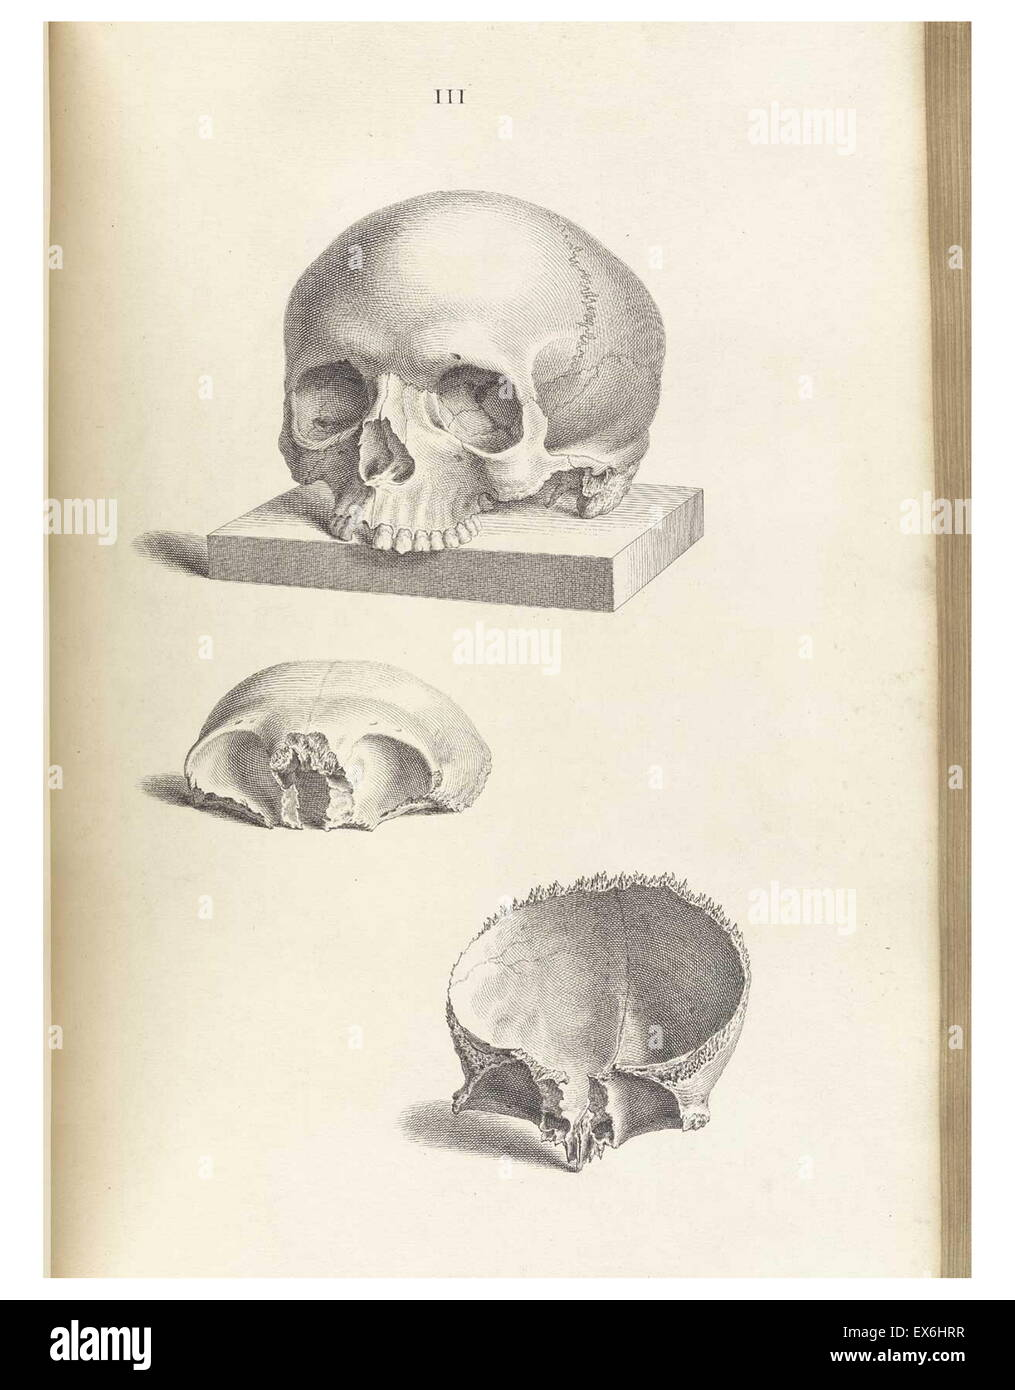 Anatomical drawing by William Cheselden in Osteographia, or The ...